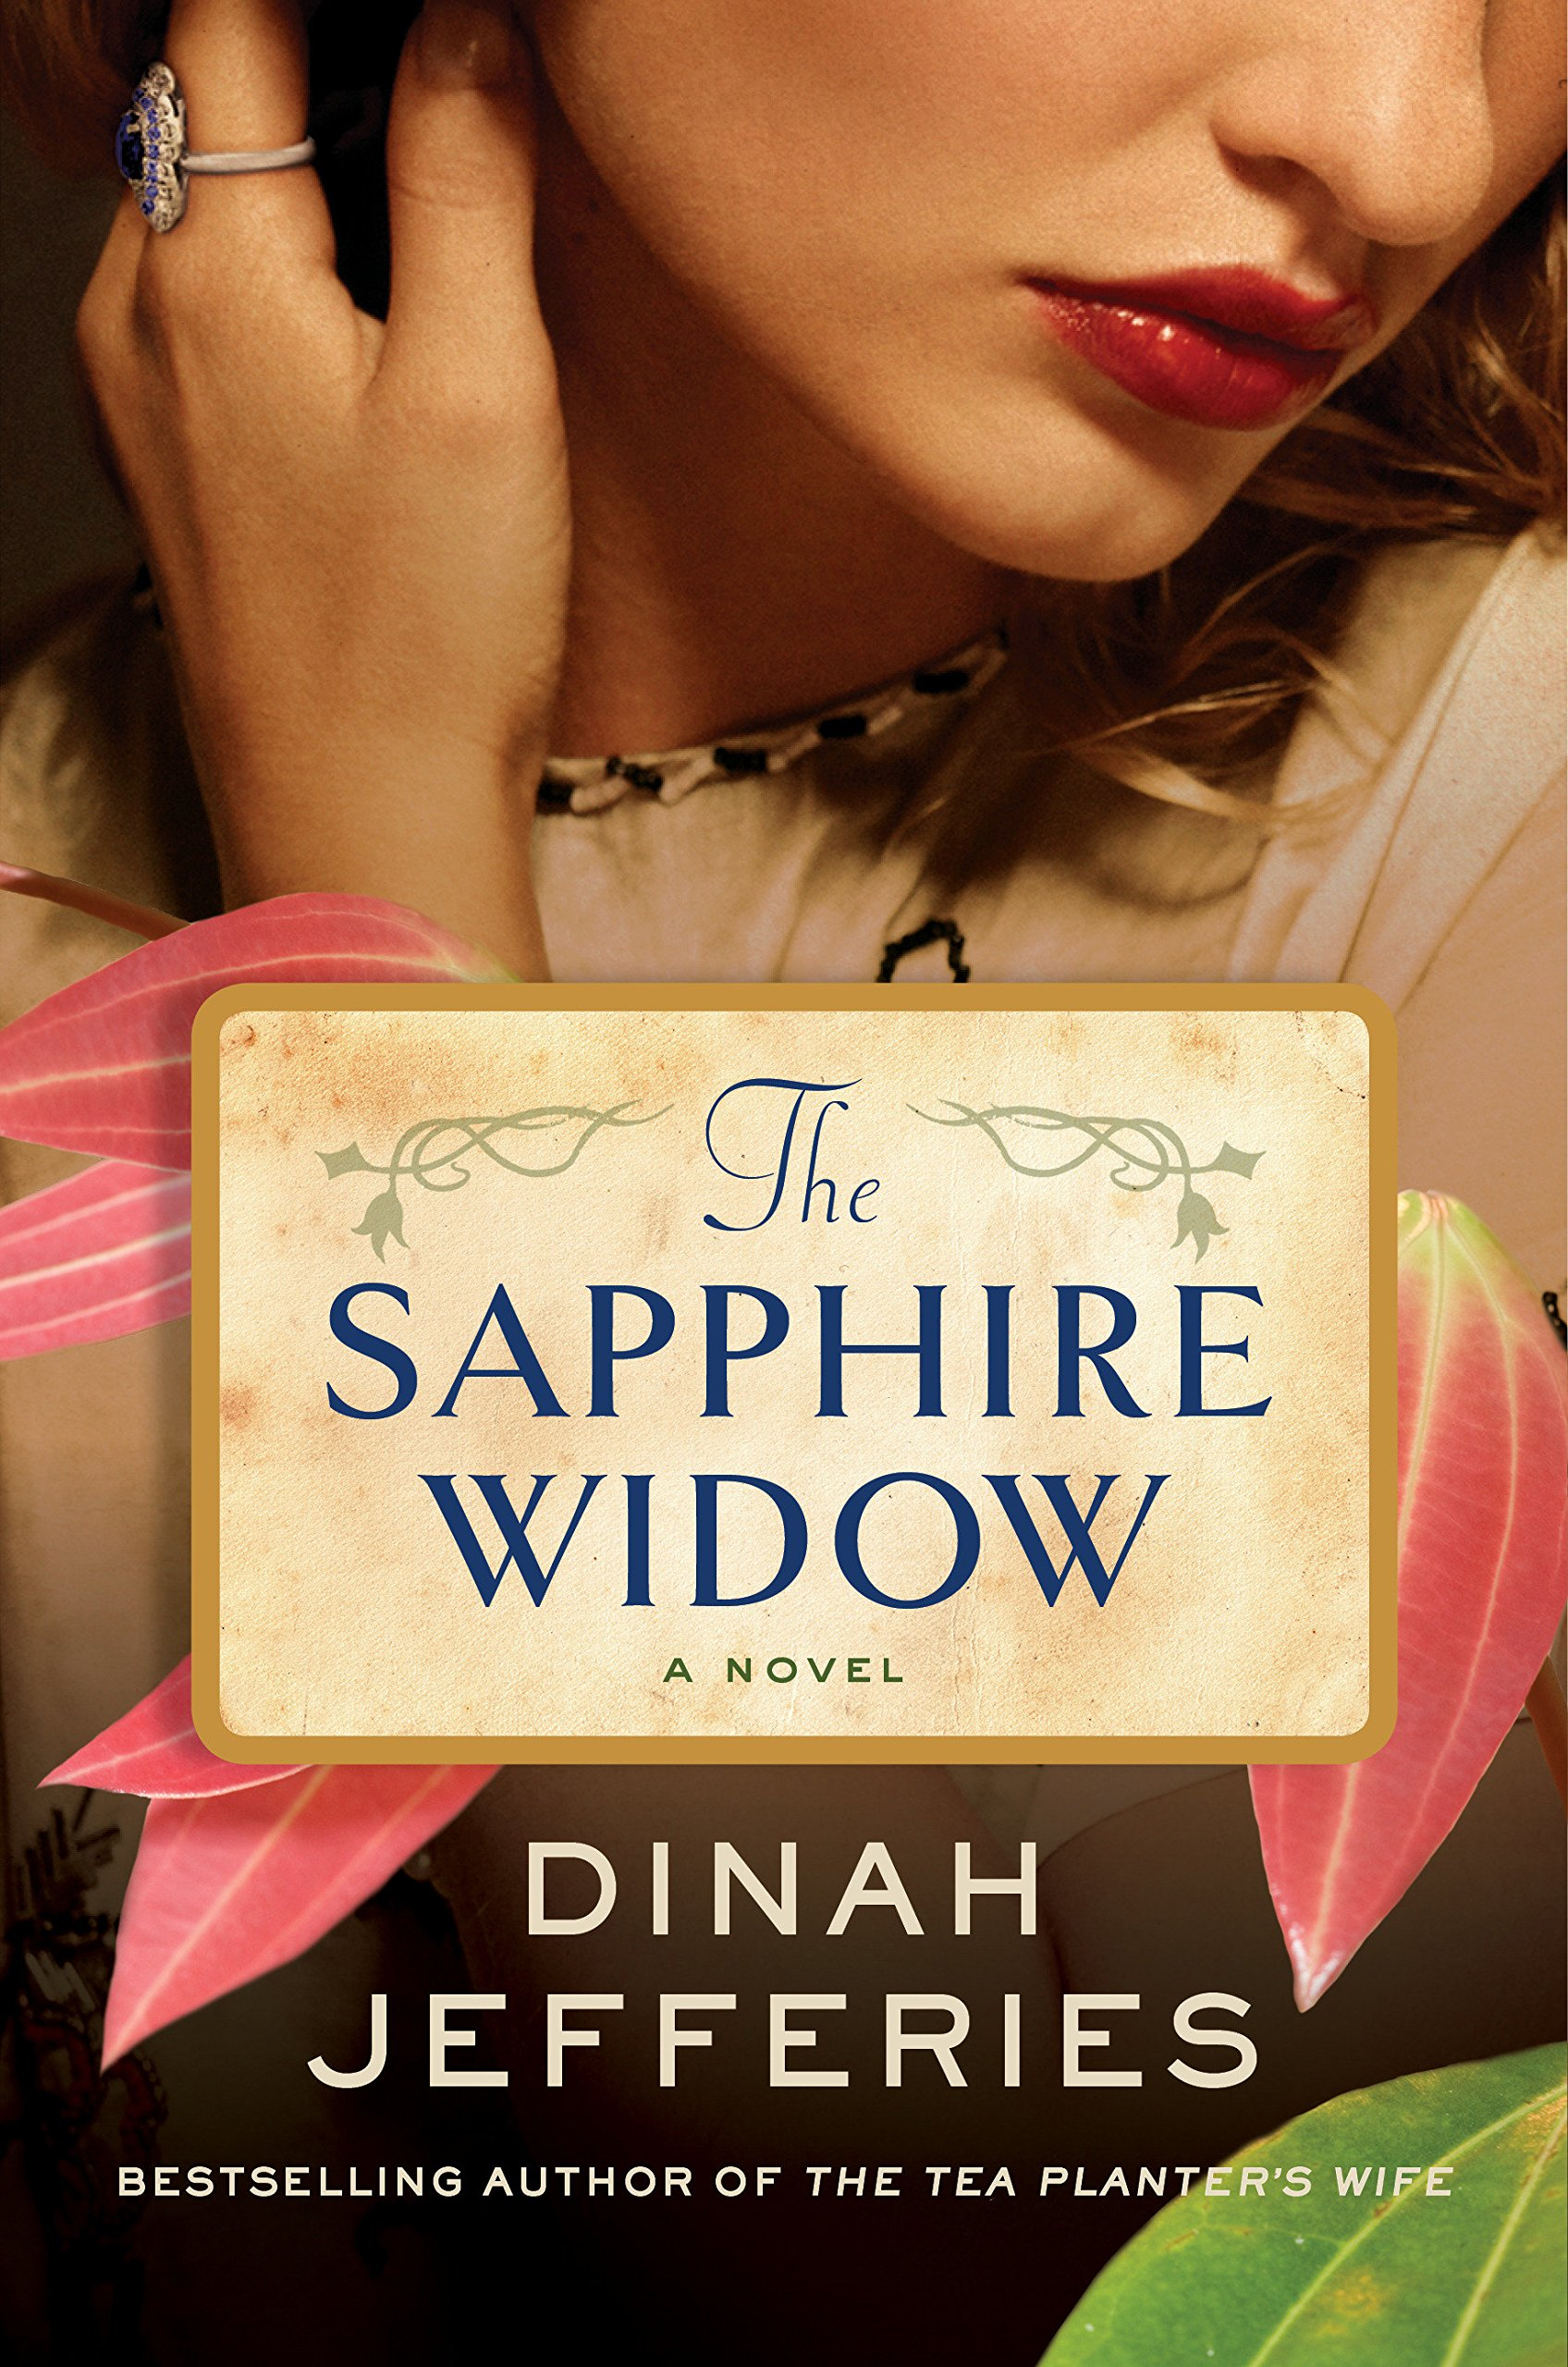 The Sapphire Widow: A Novel